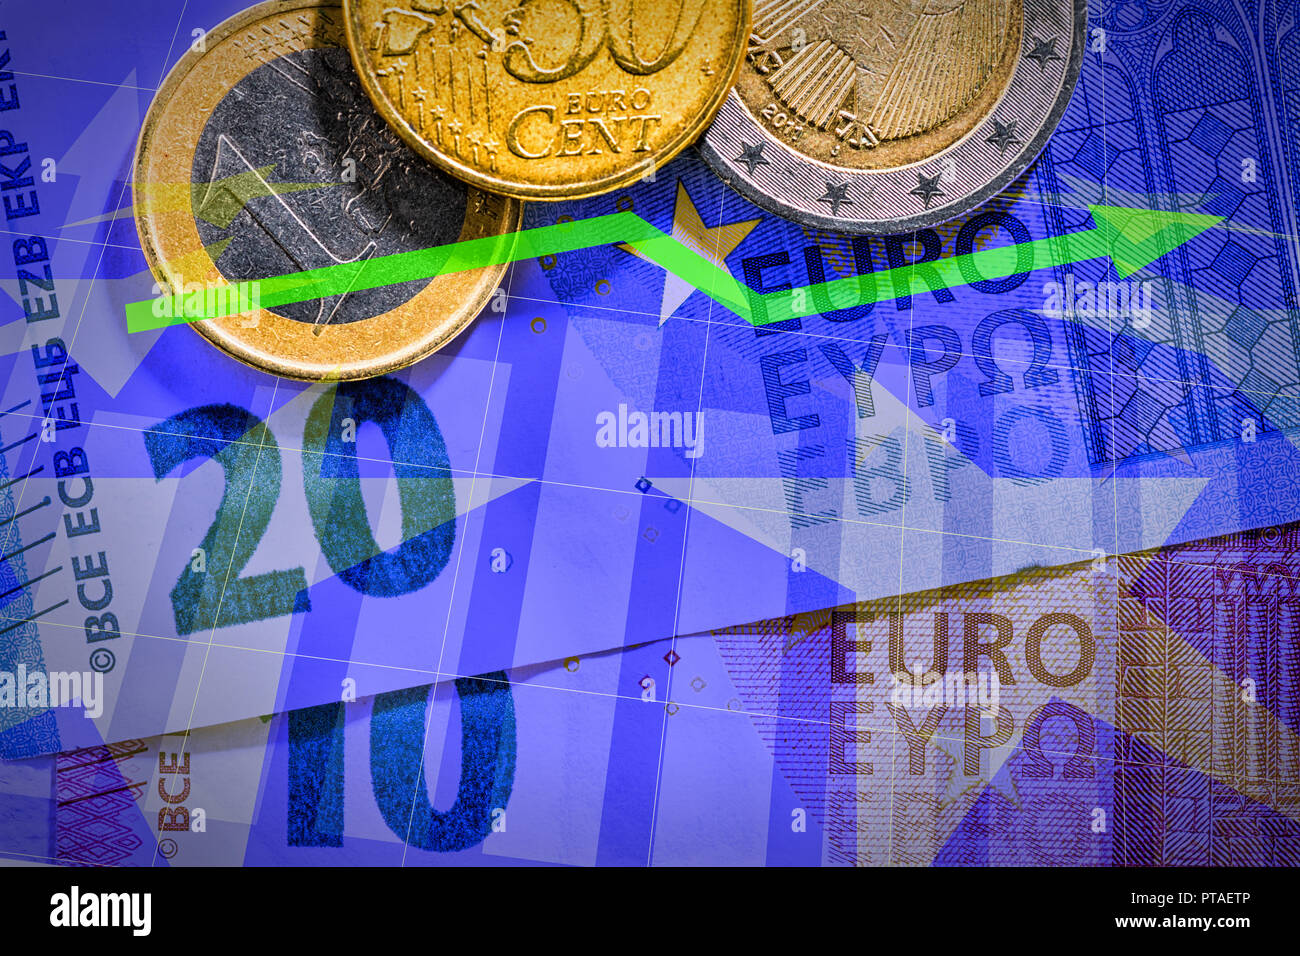 Euro notes and coins with diagram Stock Photo